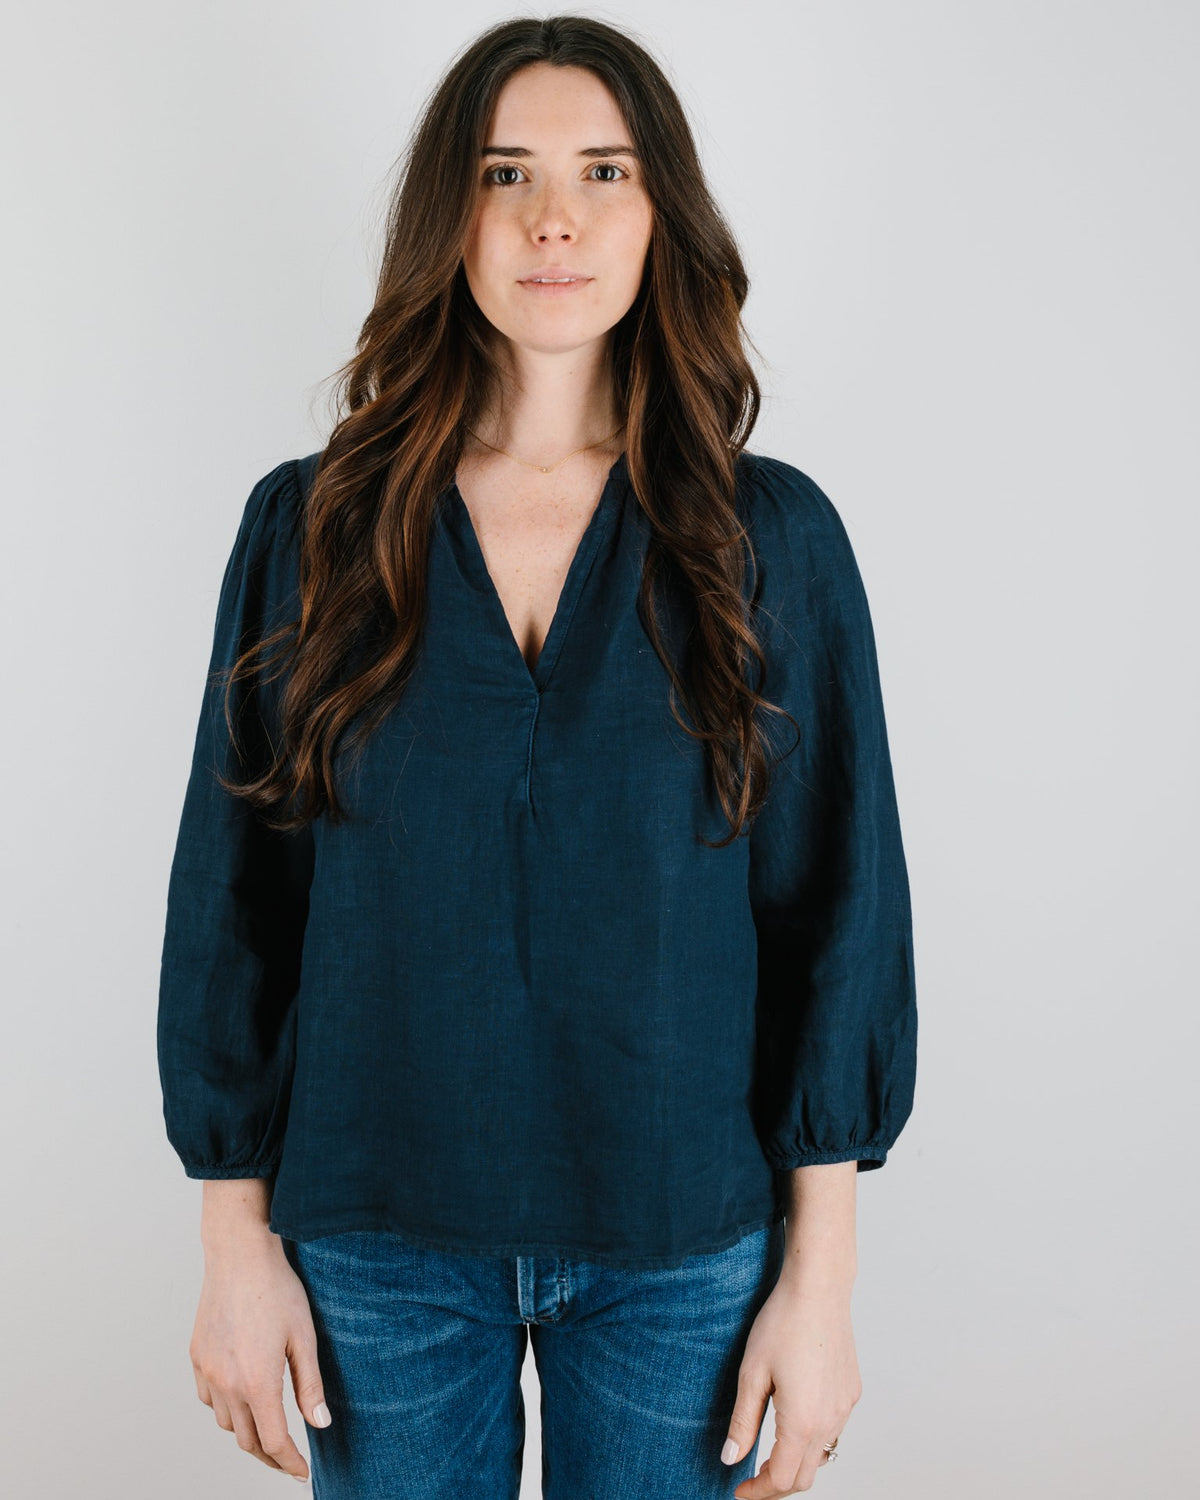 Velvet by Graham & Spencer Clothing Ileana 3/4 Sleeve Top in Night